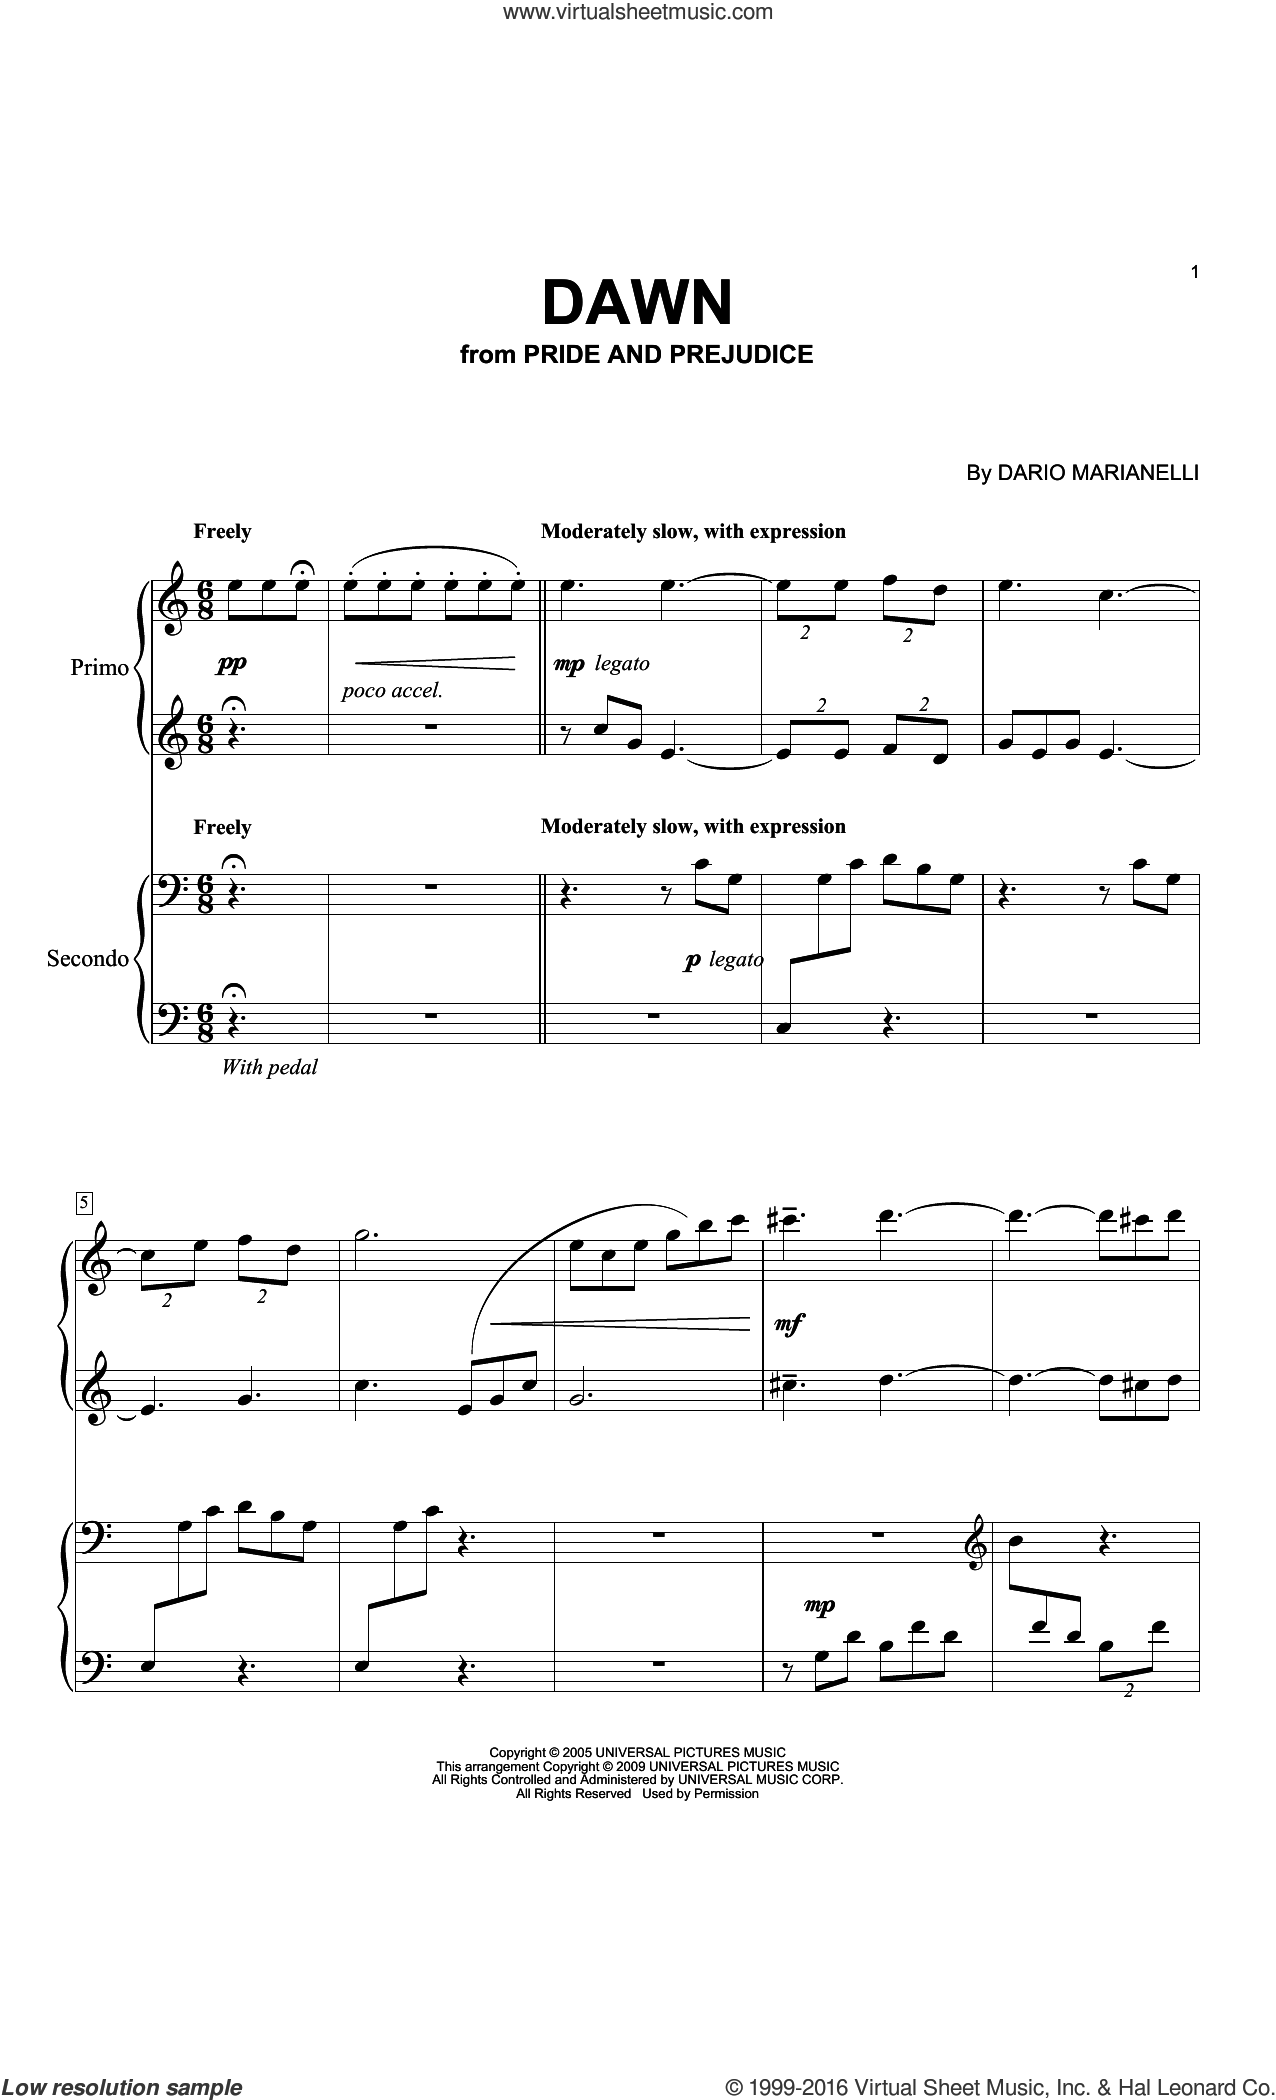 Dawn sheet music for piano four hands by Dario Marianelli, intermediate skill level